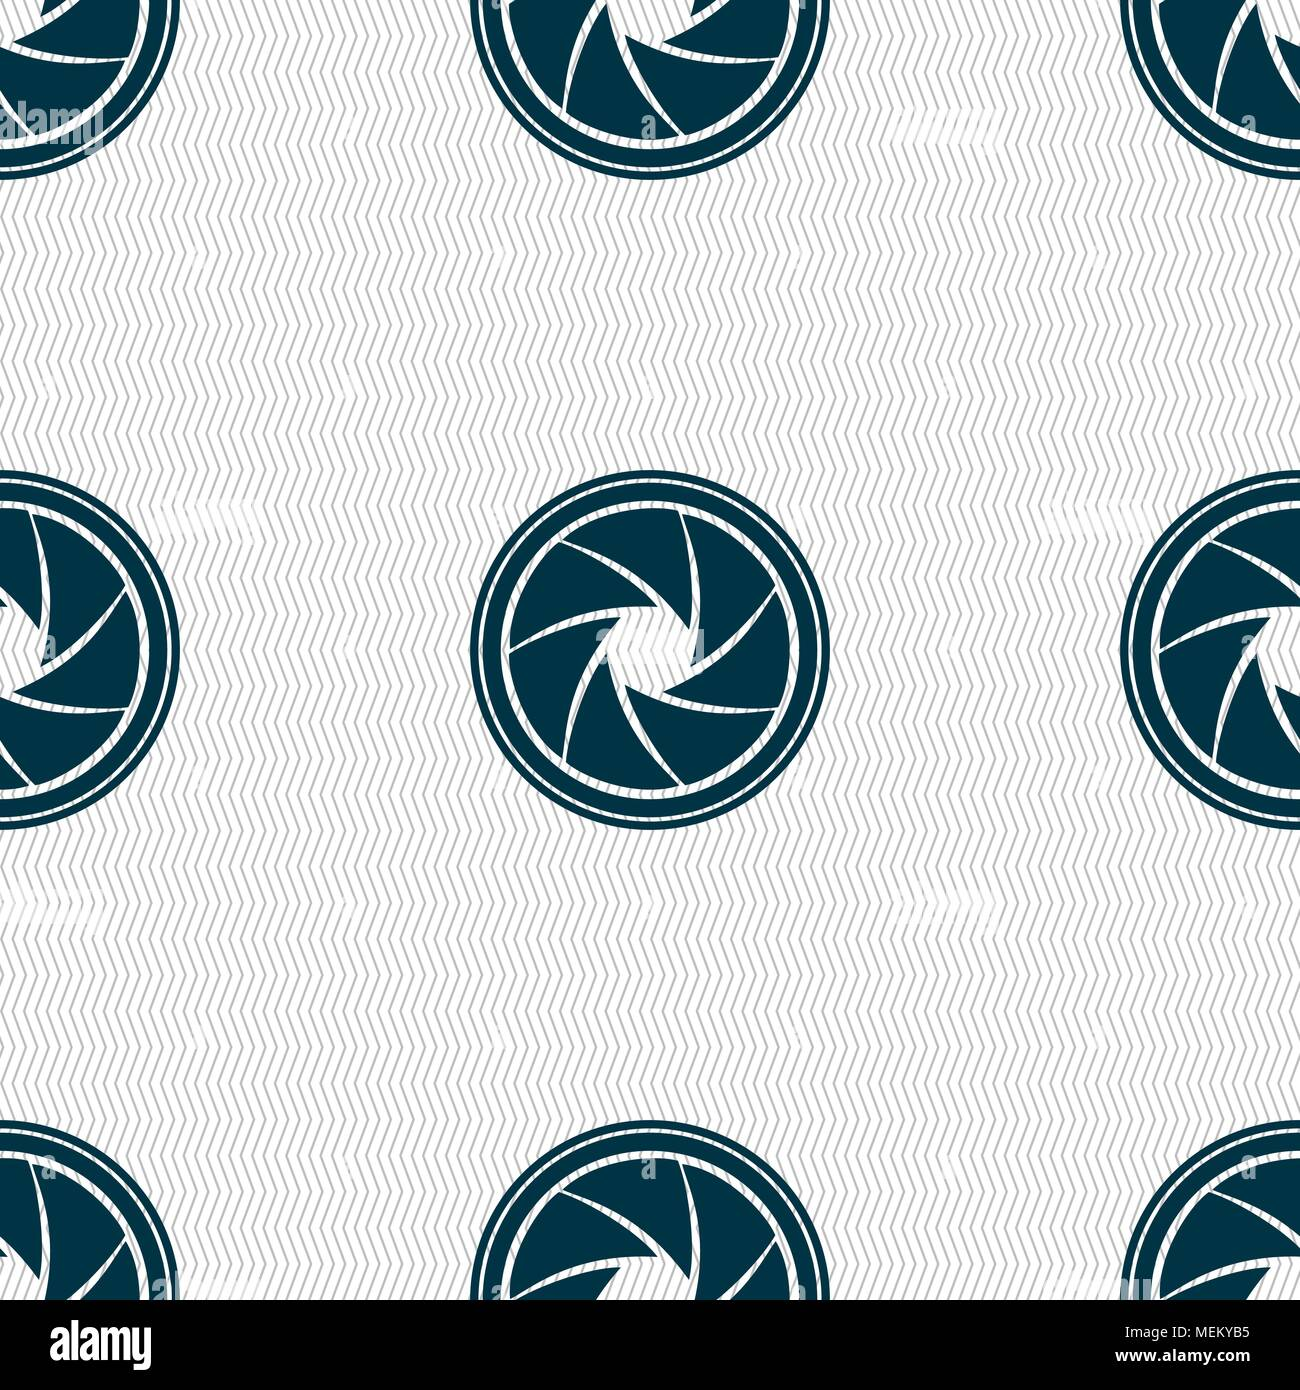 diaphragm icon  Aperture sign  Seamless abstract background